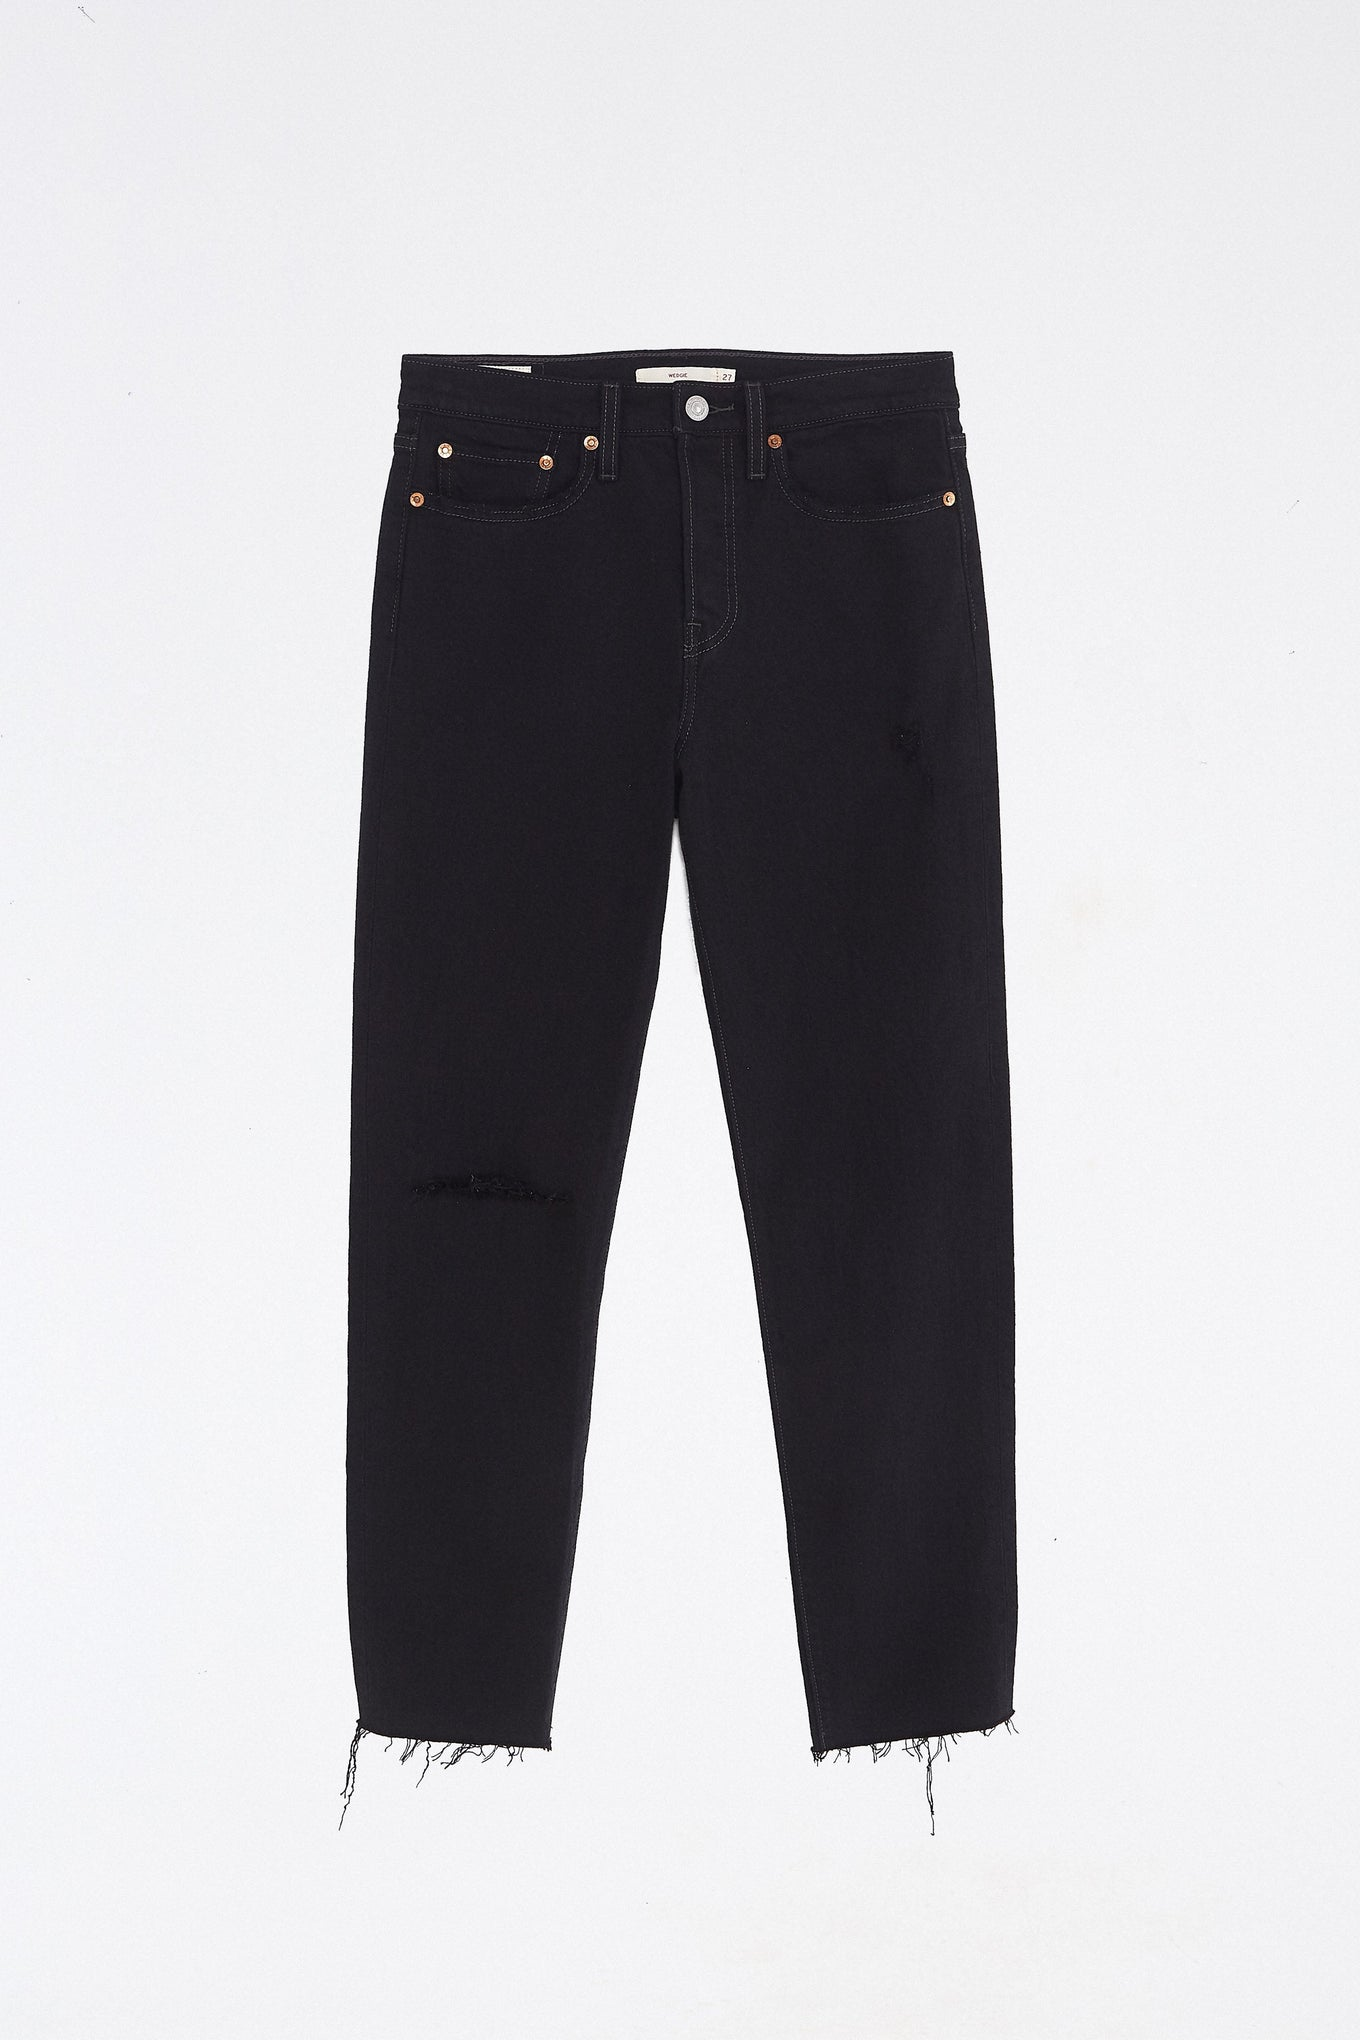 LEVIS WEDGIE ICON JEANS